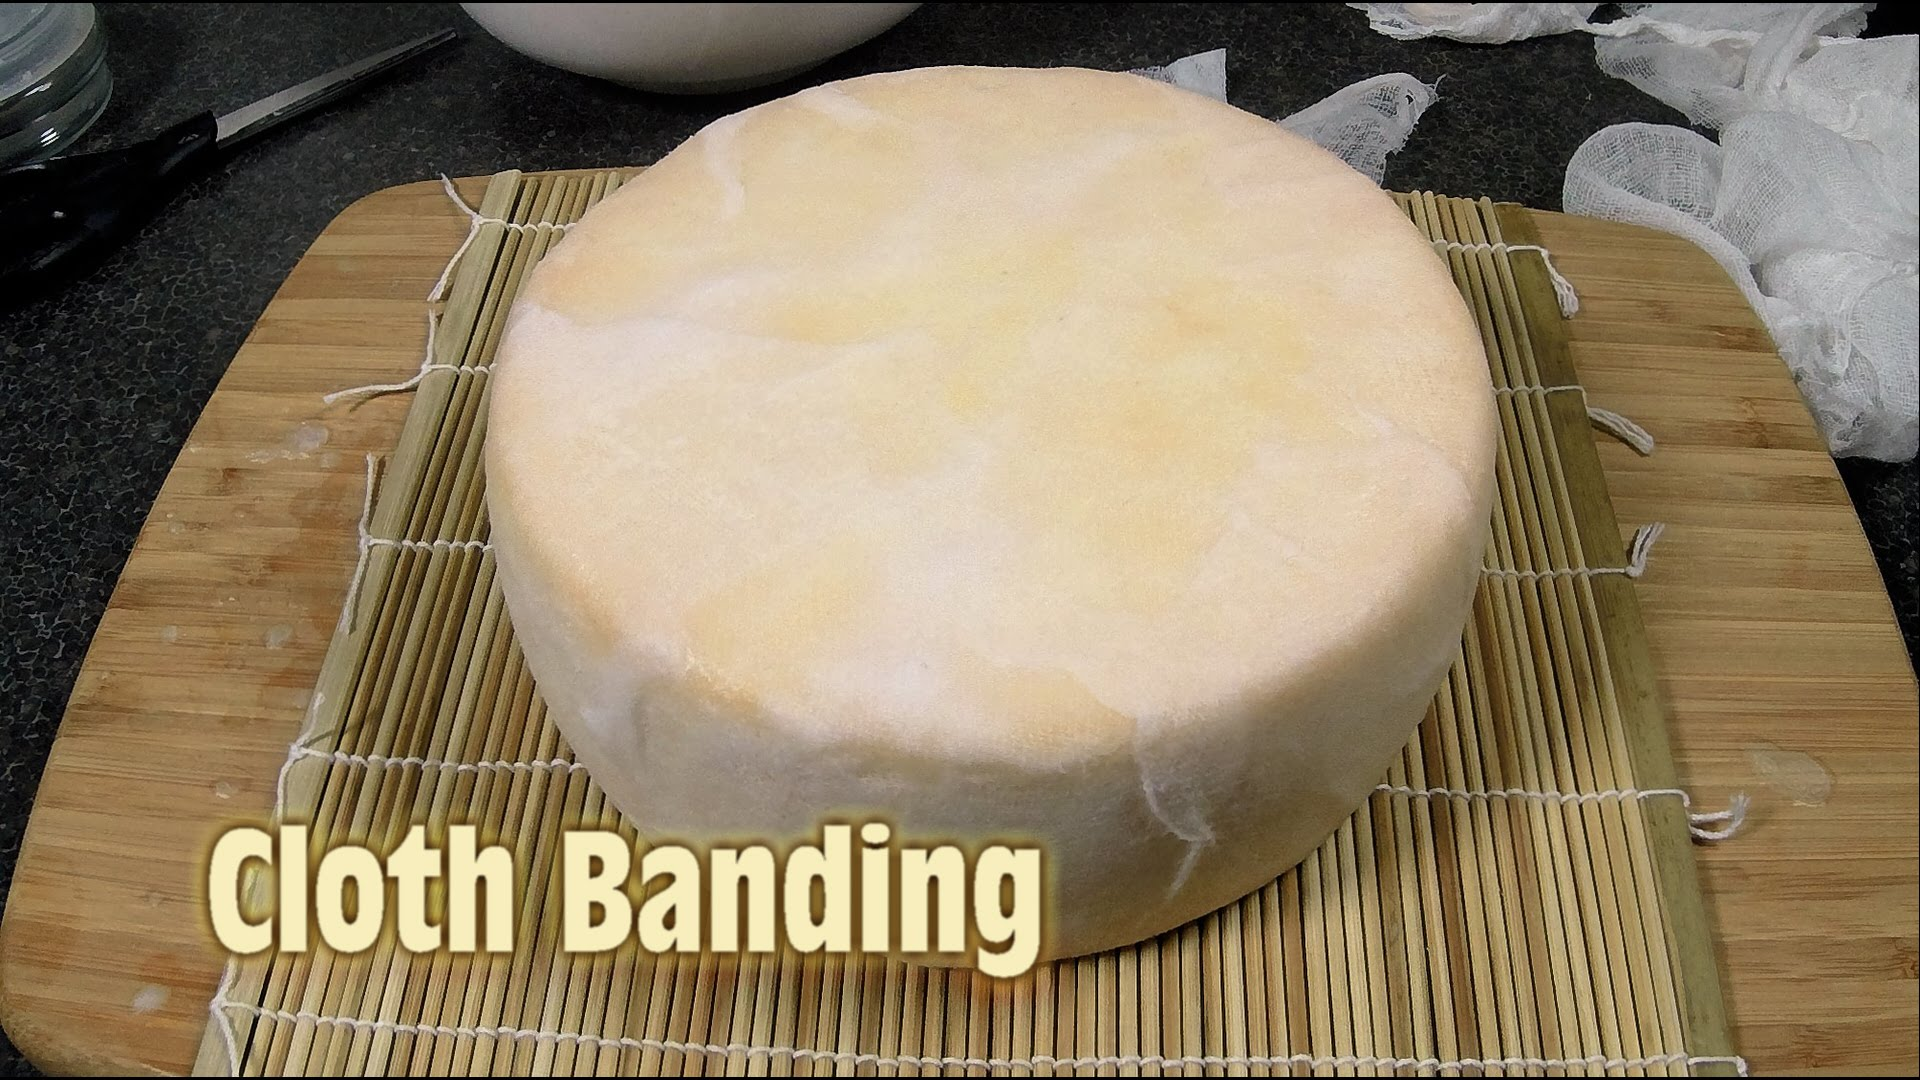 How To Make Cloth Banded Cheddar Cheese...